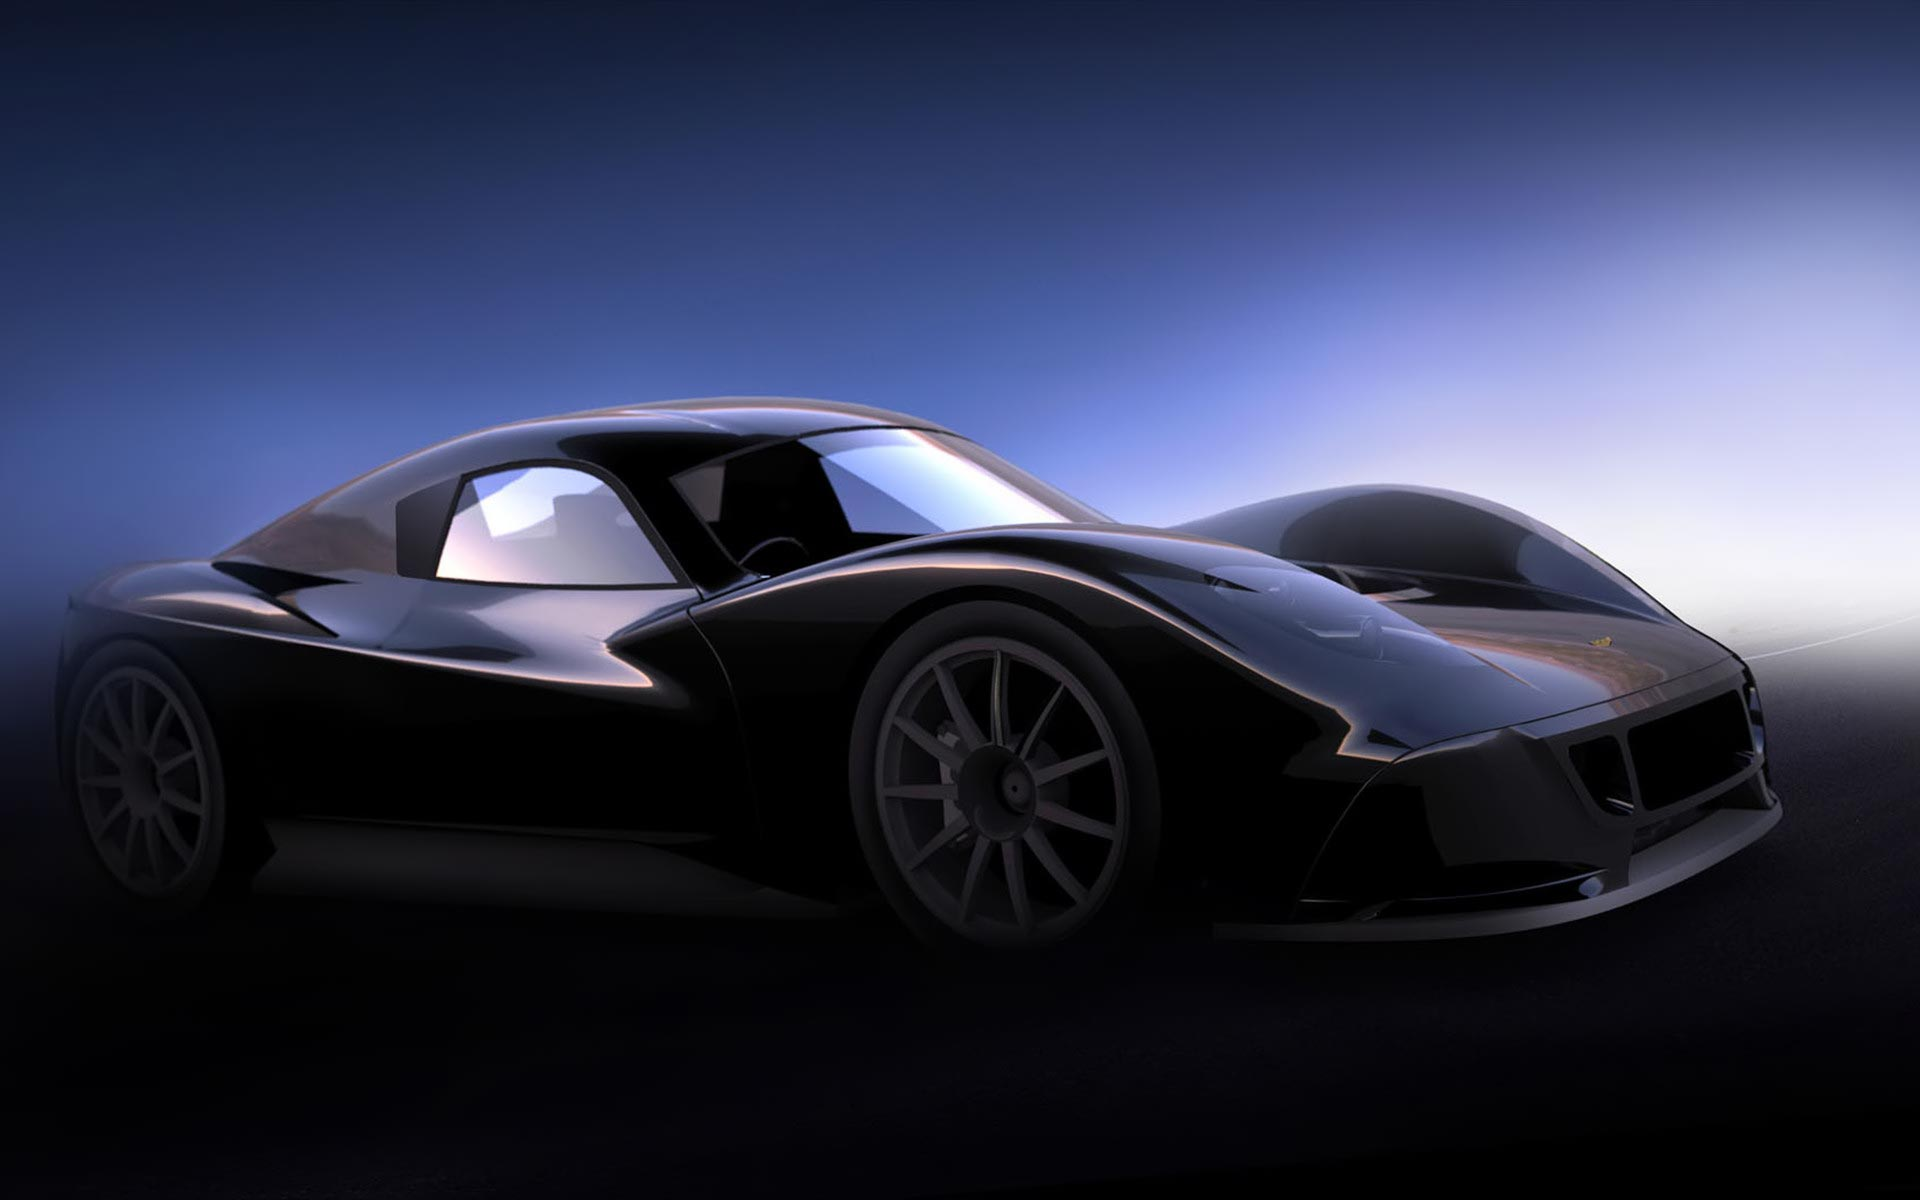 car wallpapers and screensavers - auto wallpapers and screen